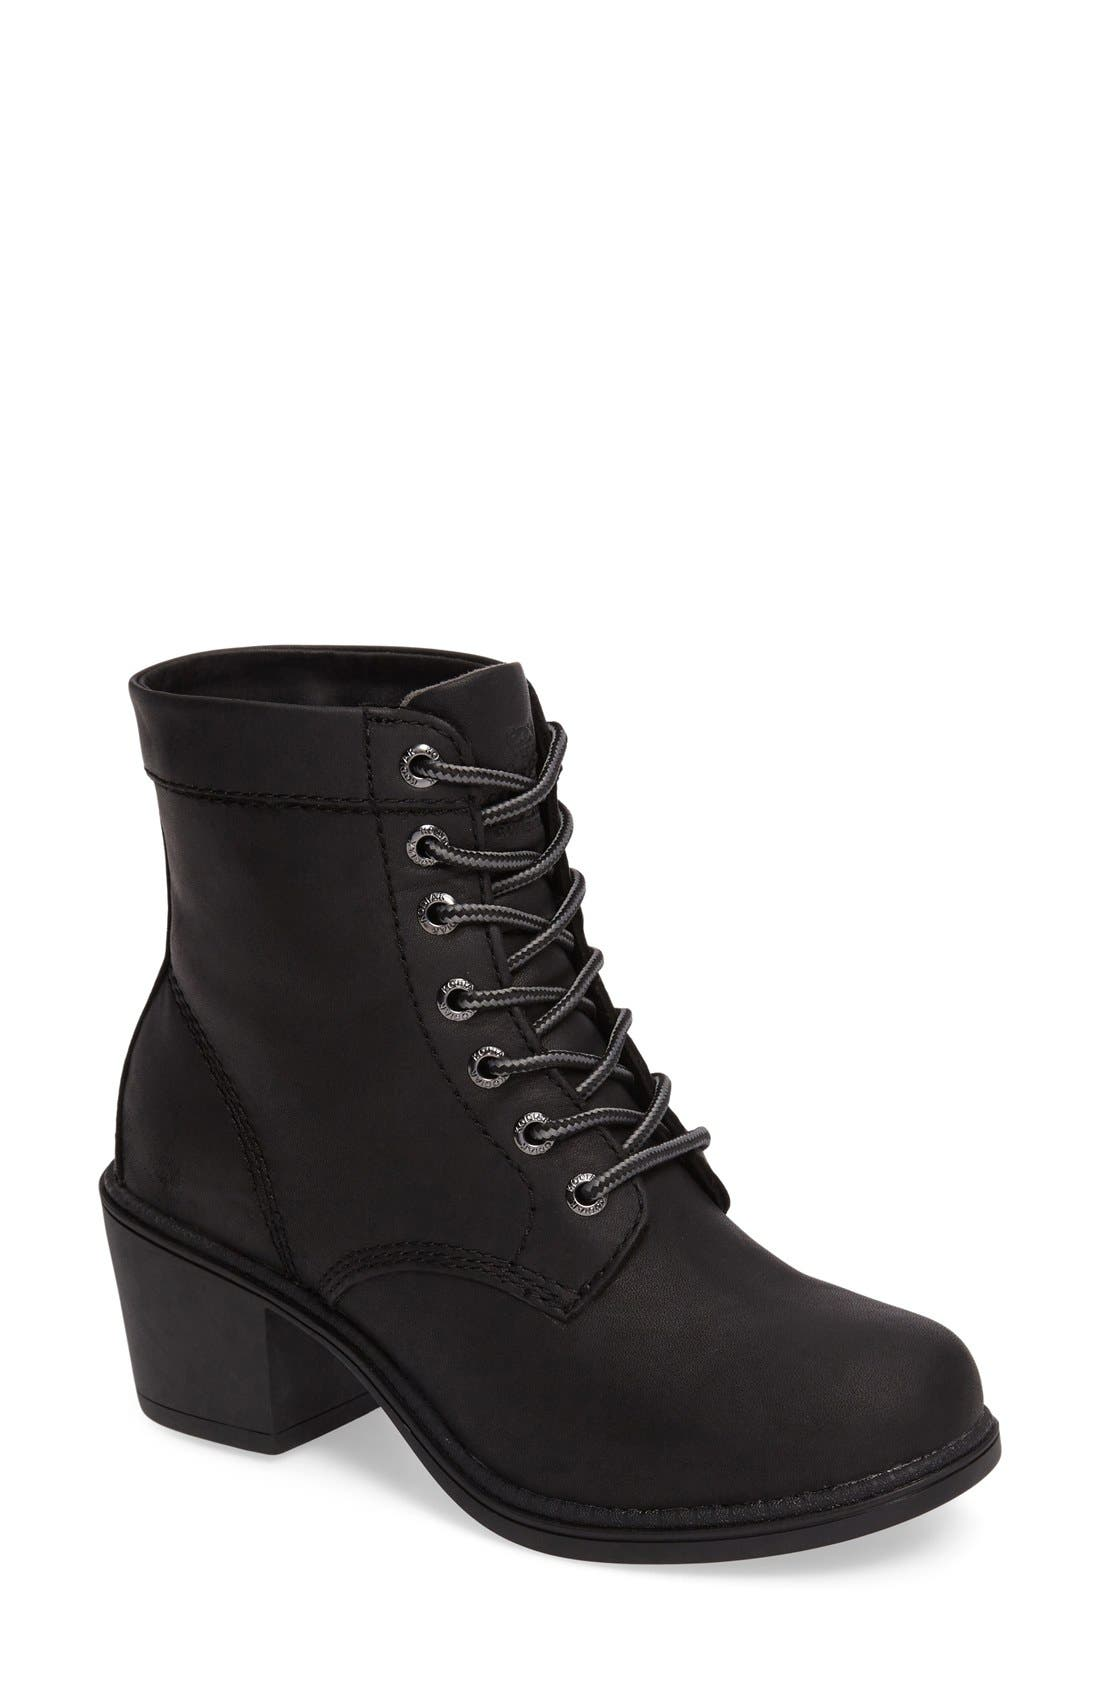 Claire Waterproof Bootie,                             Main thumbnail 1, color,                             Black Leather